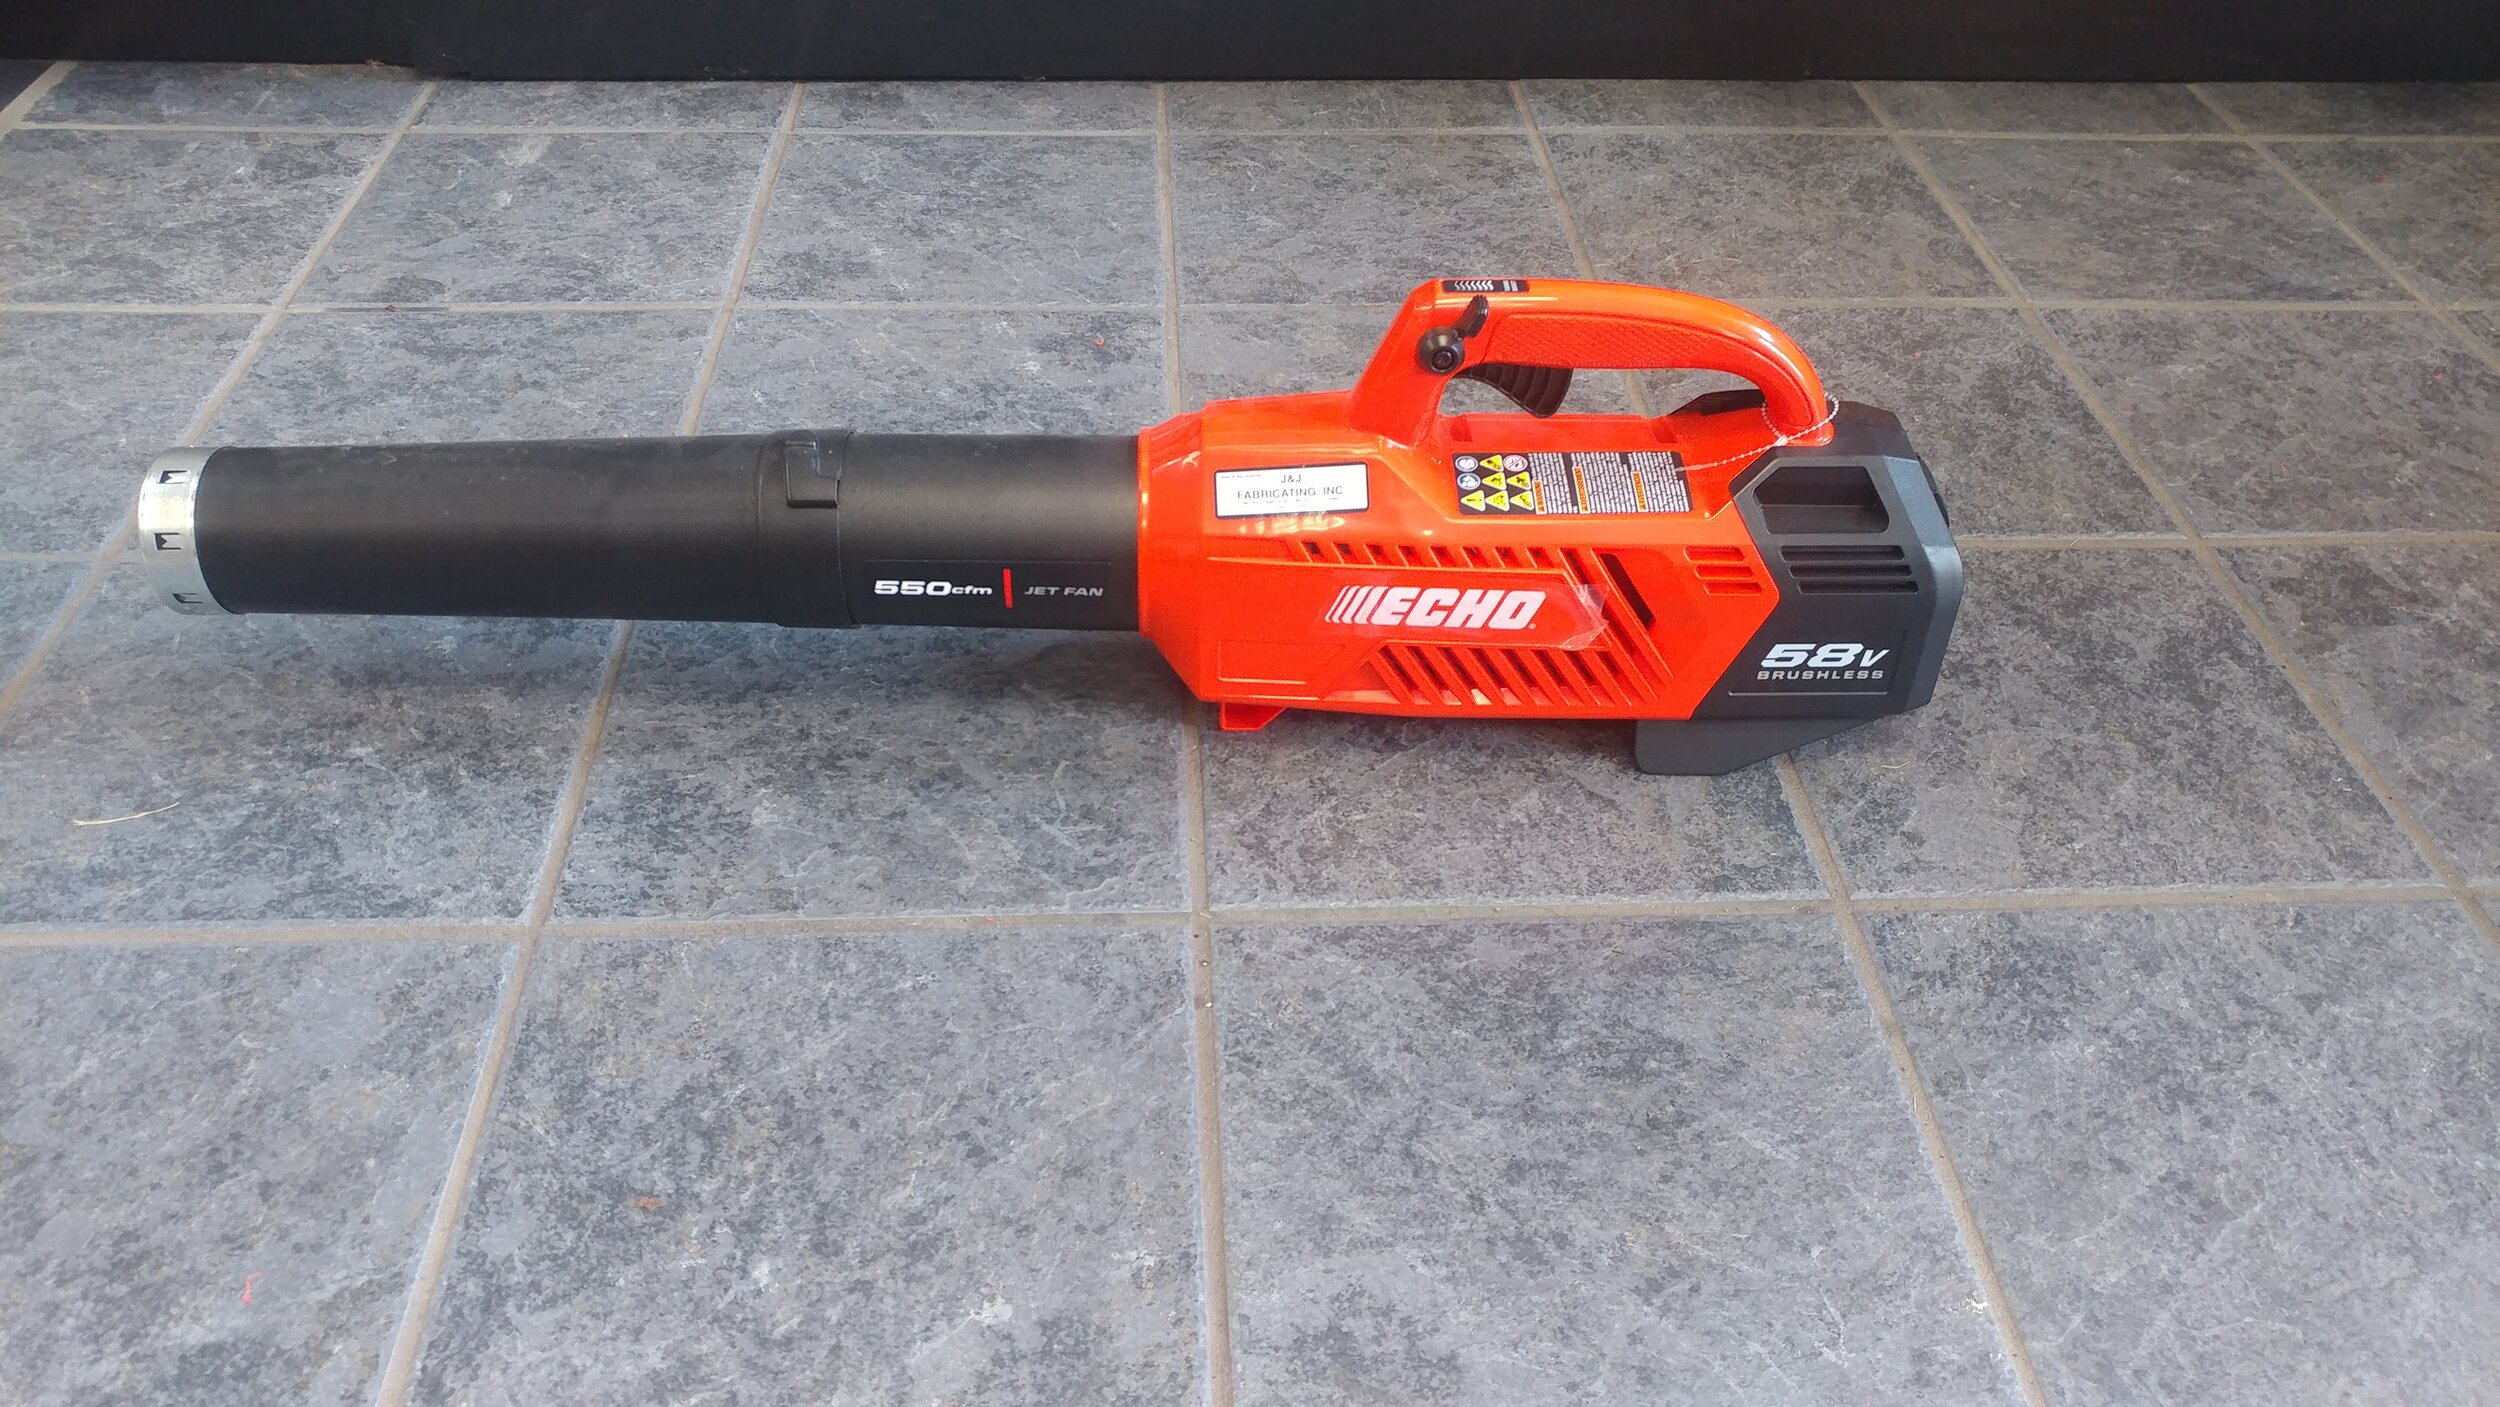 58 volt battery - CPLB-58V2AH blower with charger, $ 229.99.  Great for around the home.